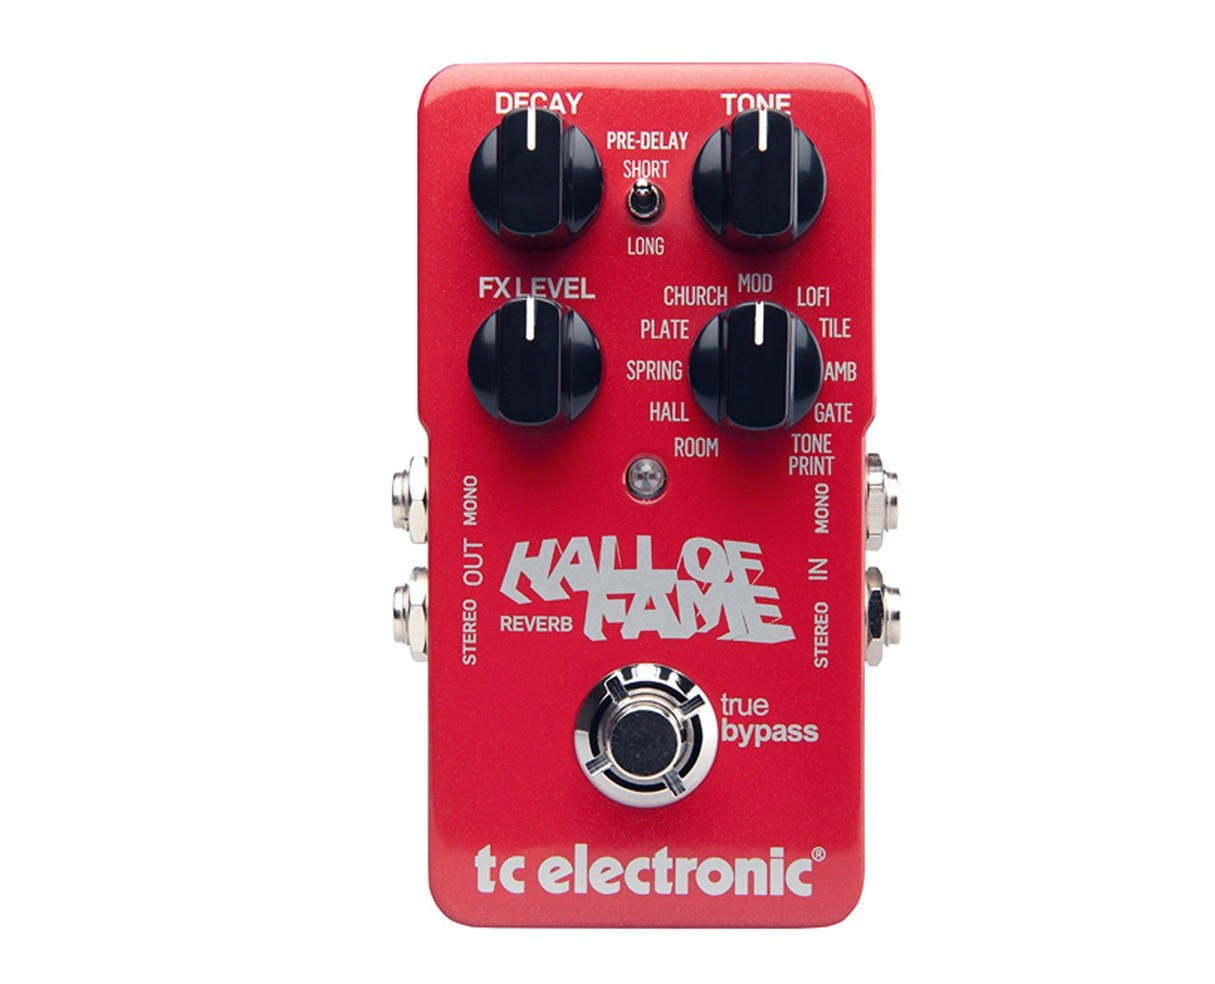 Pedal Power How To Enhance Your Plugged In Tone